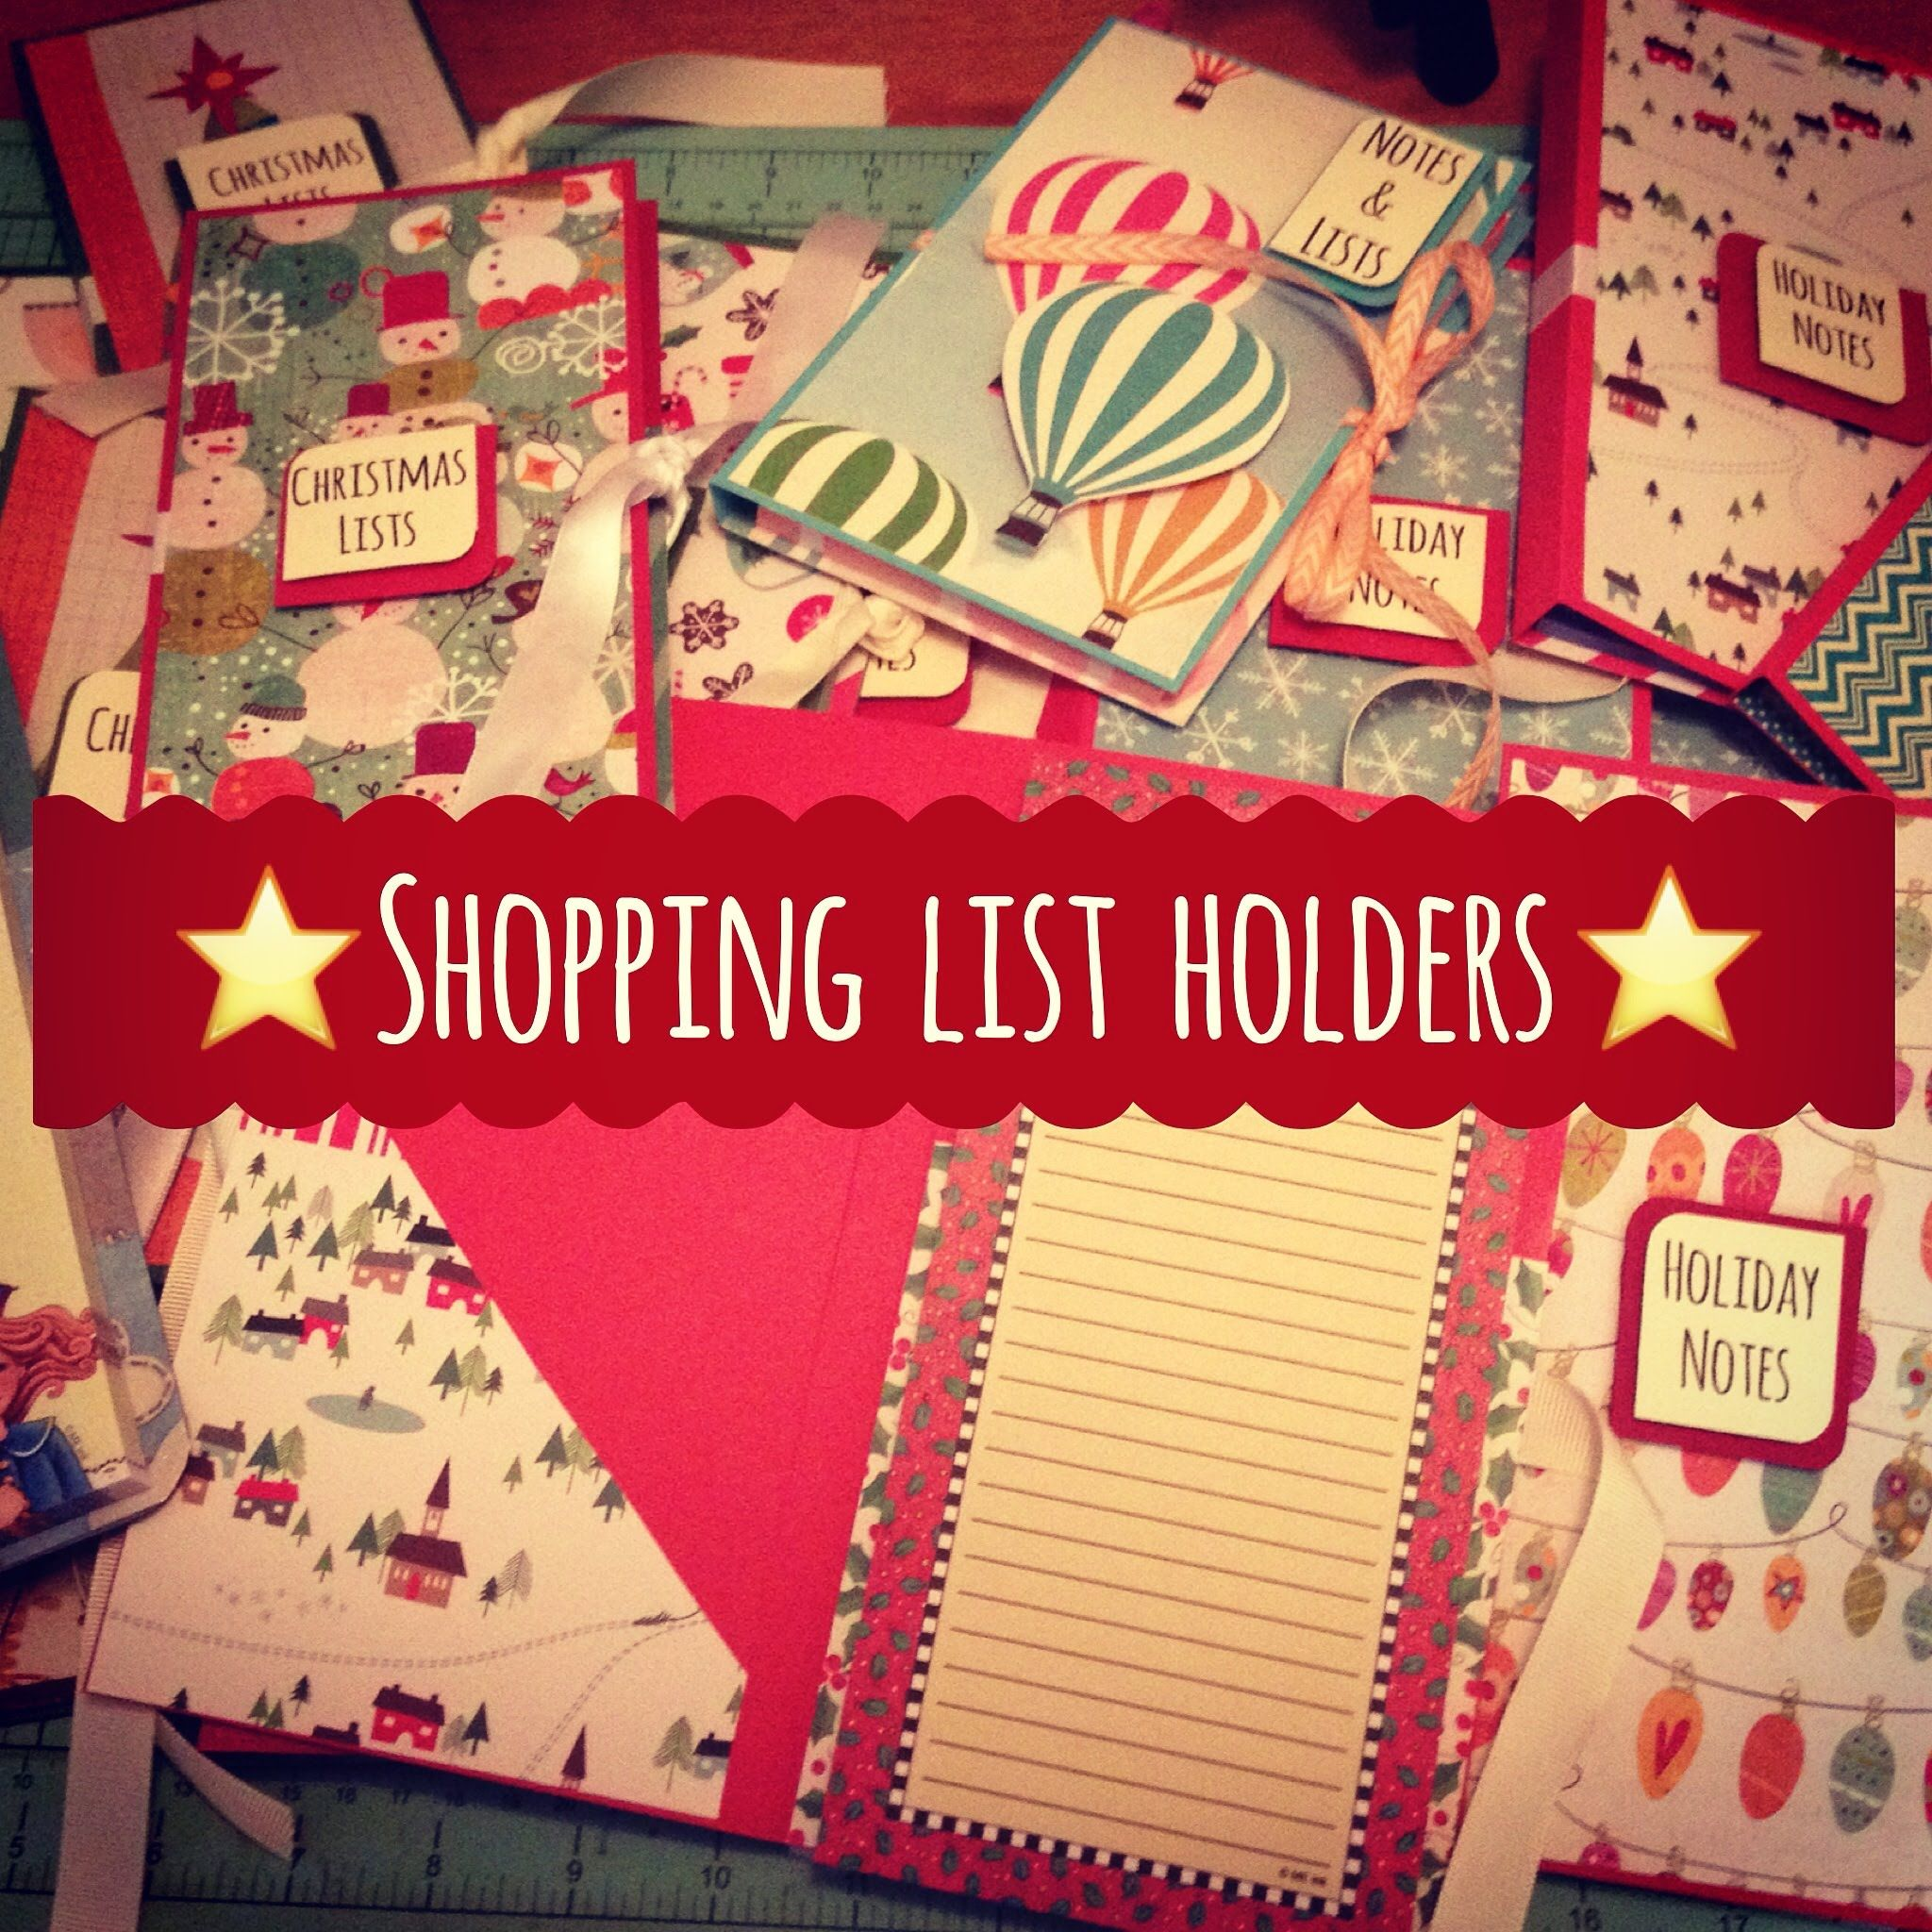 Craft Fair Idea 8 Shopping List Holders With Pocket To Hold Notepad